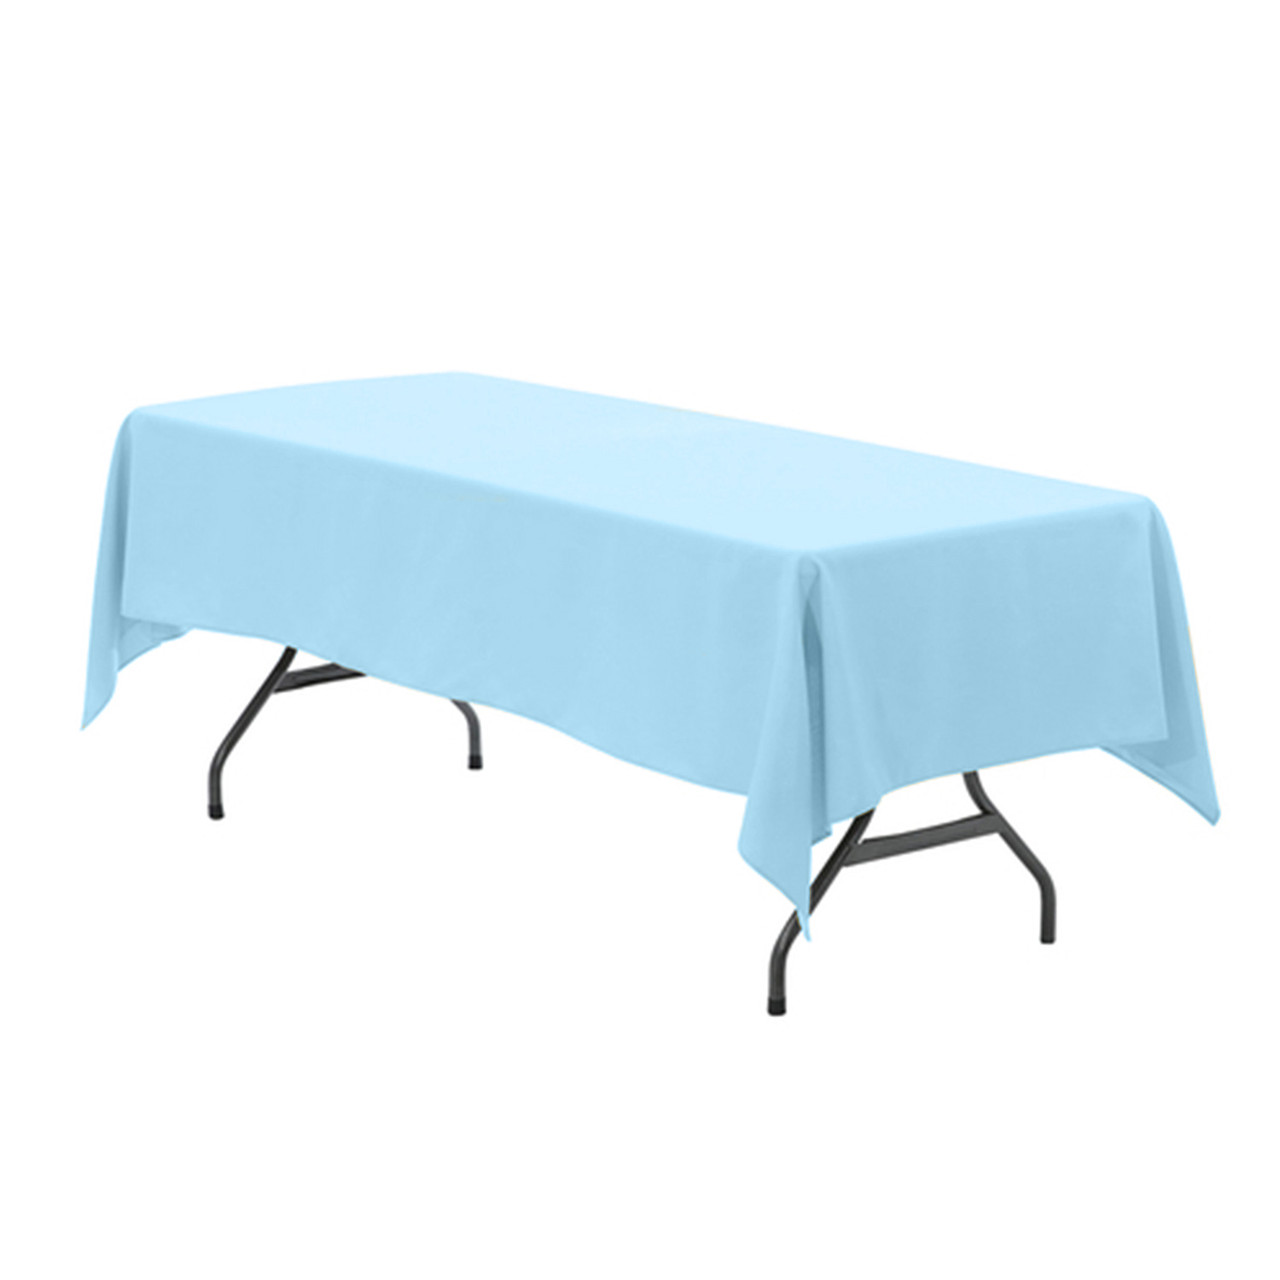 5 packs 126x60 inch Seamless Rectanglar Polyester Tablecloths Banquet 3 COLORS